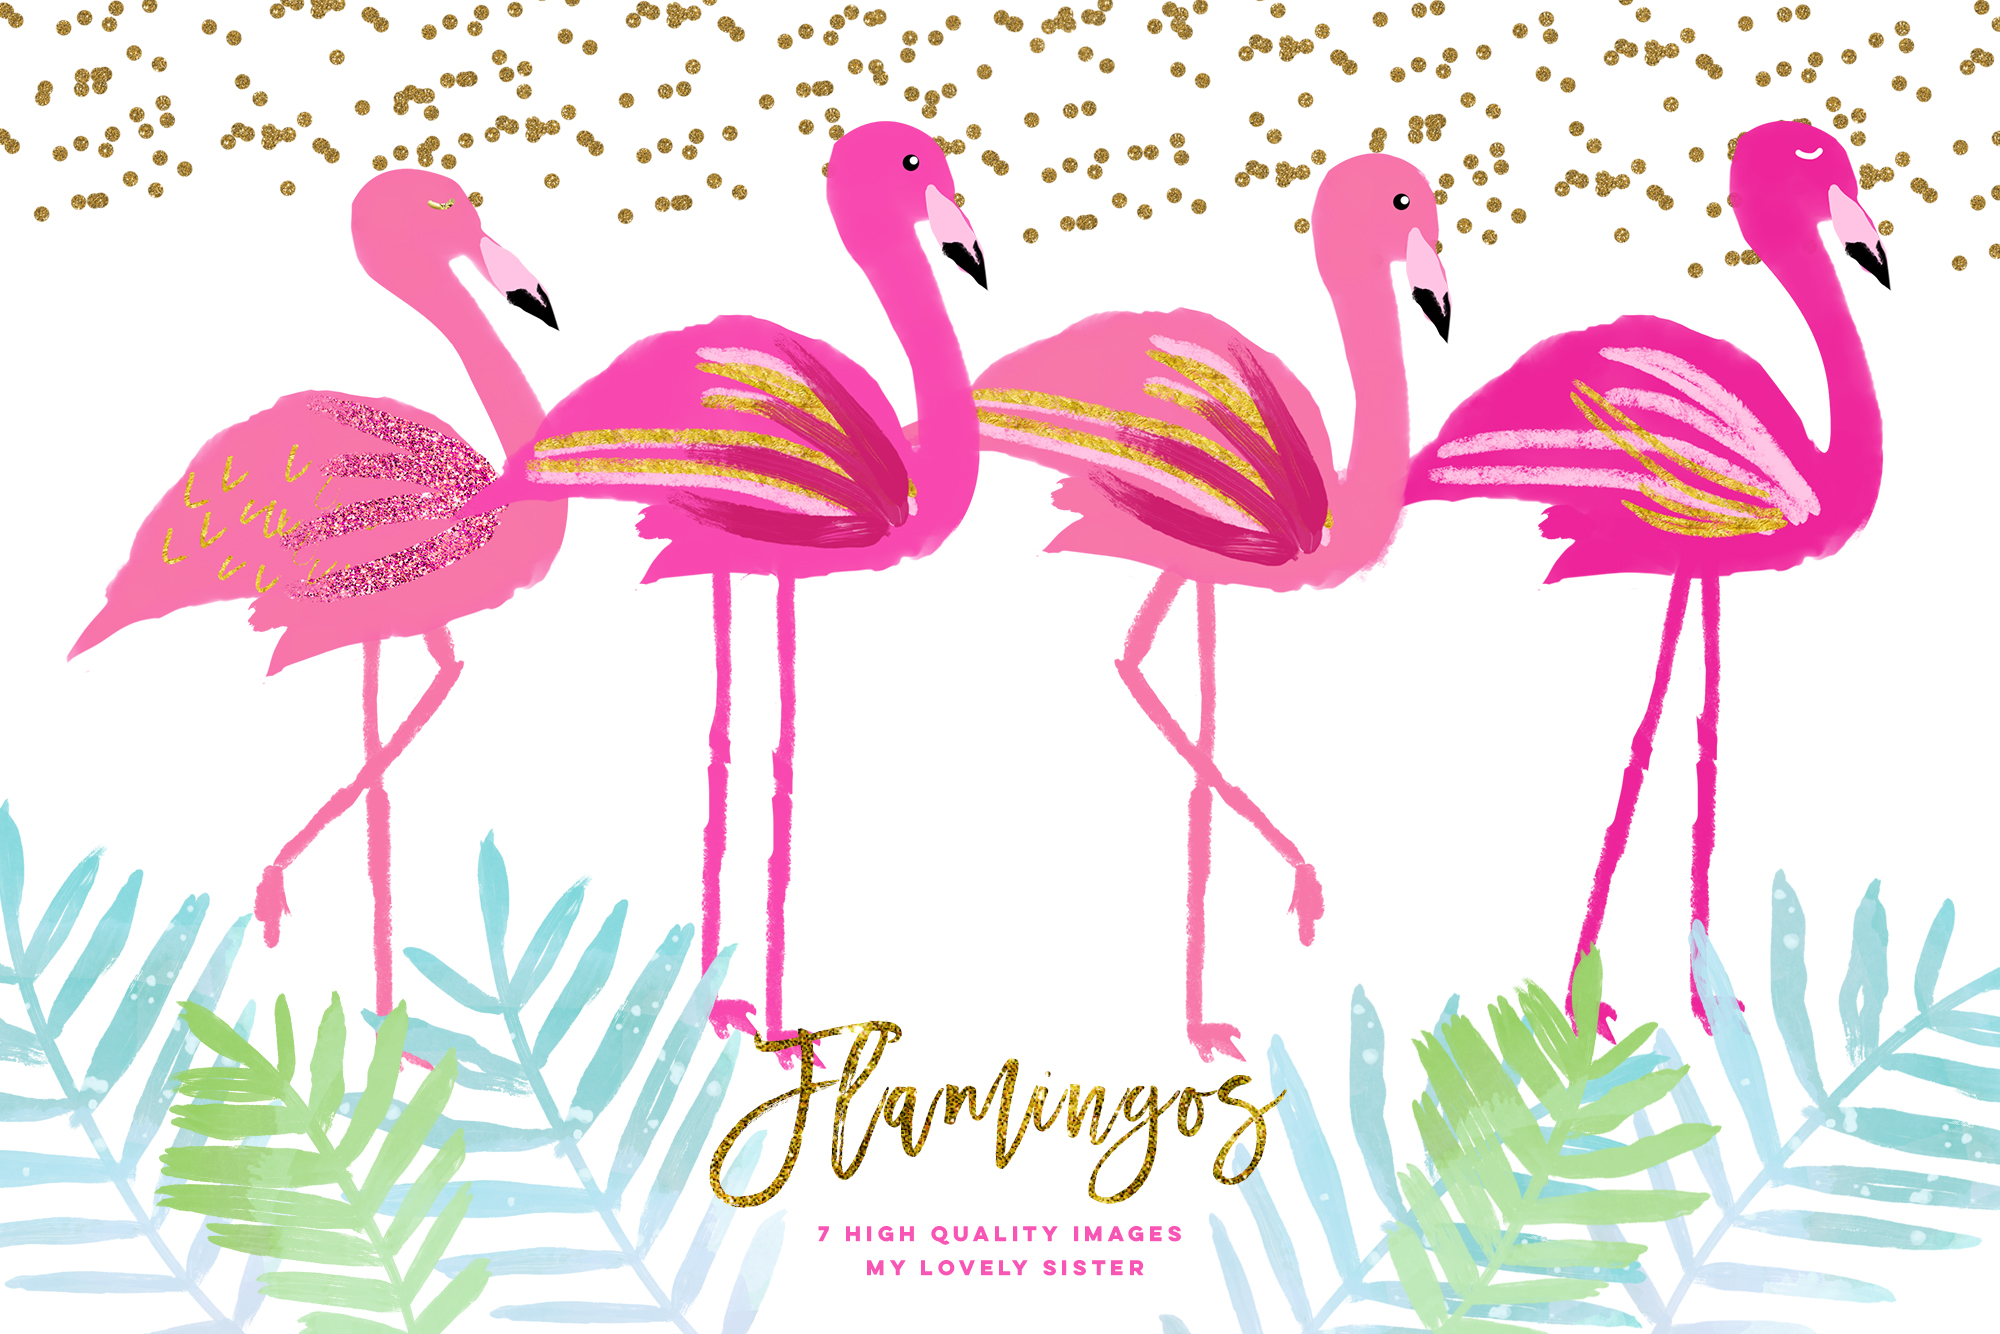 png freeuse Pink scrapbooking cupcake toppers. Flamingo clipart.